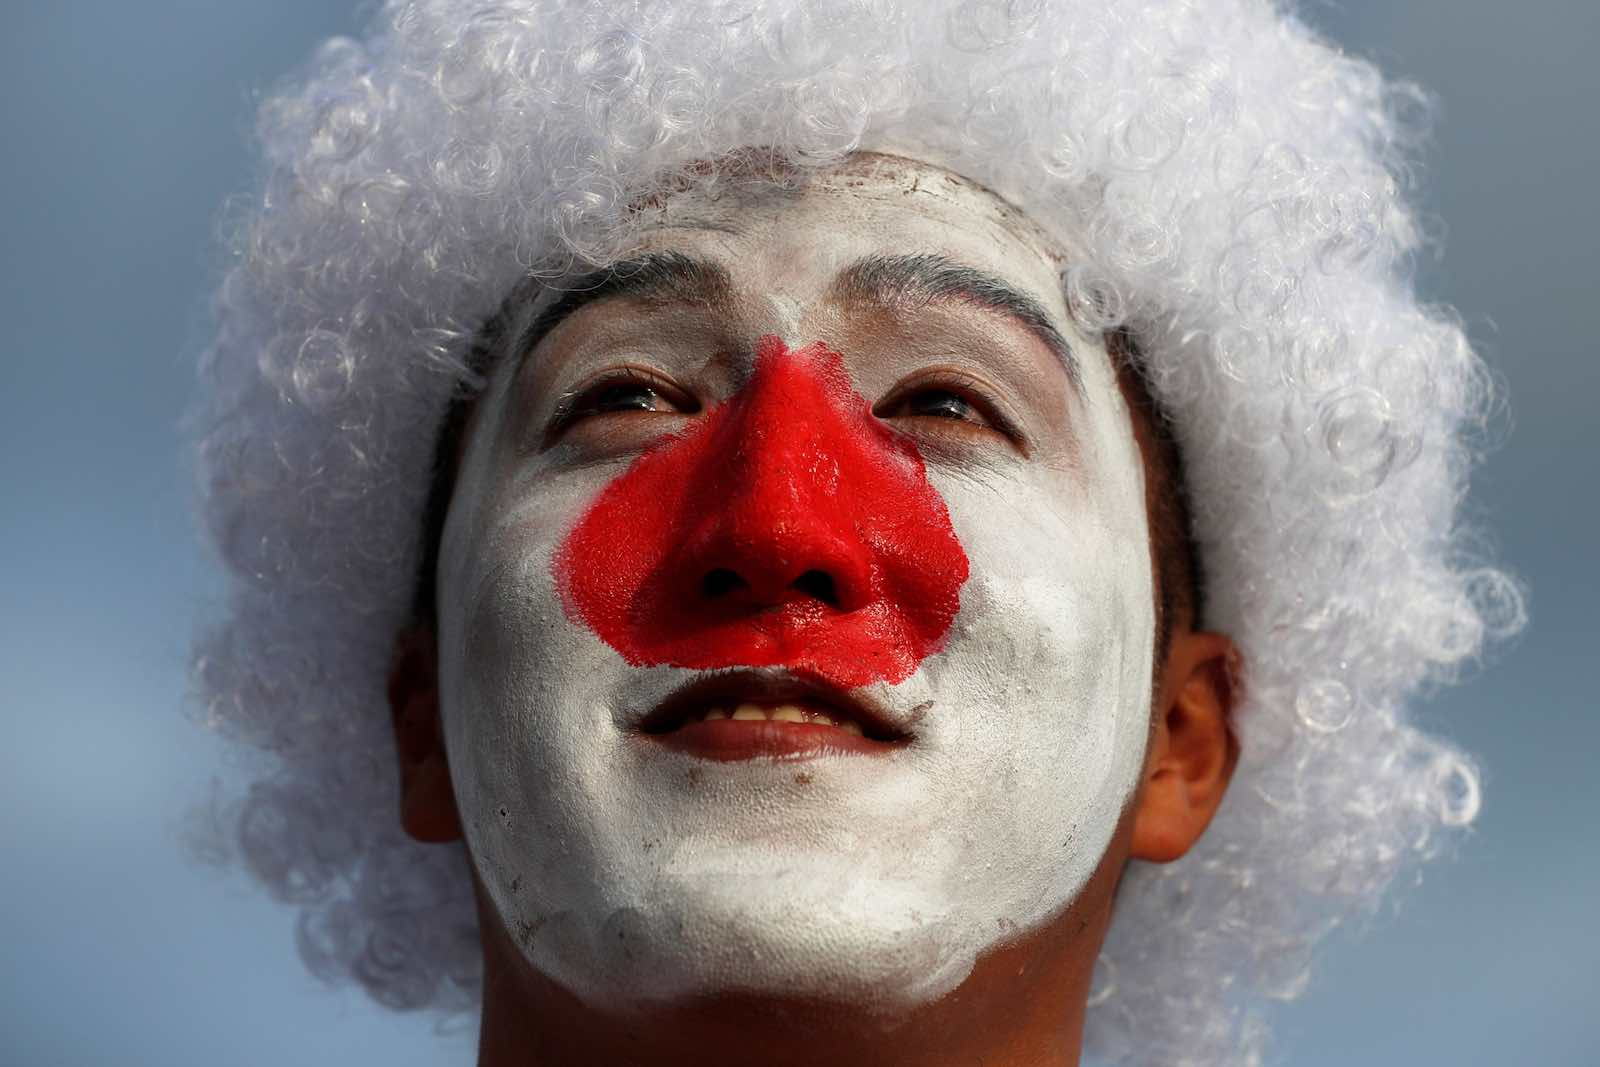 A Japan rugby fan outside the Shizuoka Stadium Ecopa in Shizuoka prefecture, 4 October 2019 (Photo: Adrian Dennis/AFP/Getty Images)